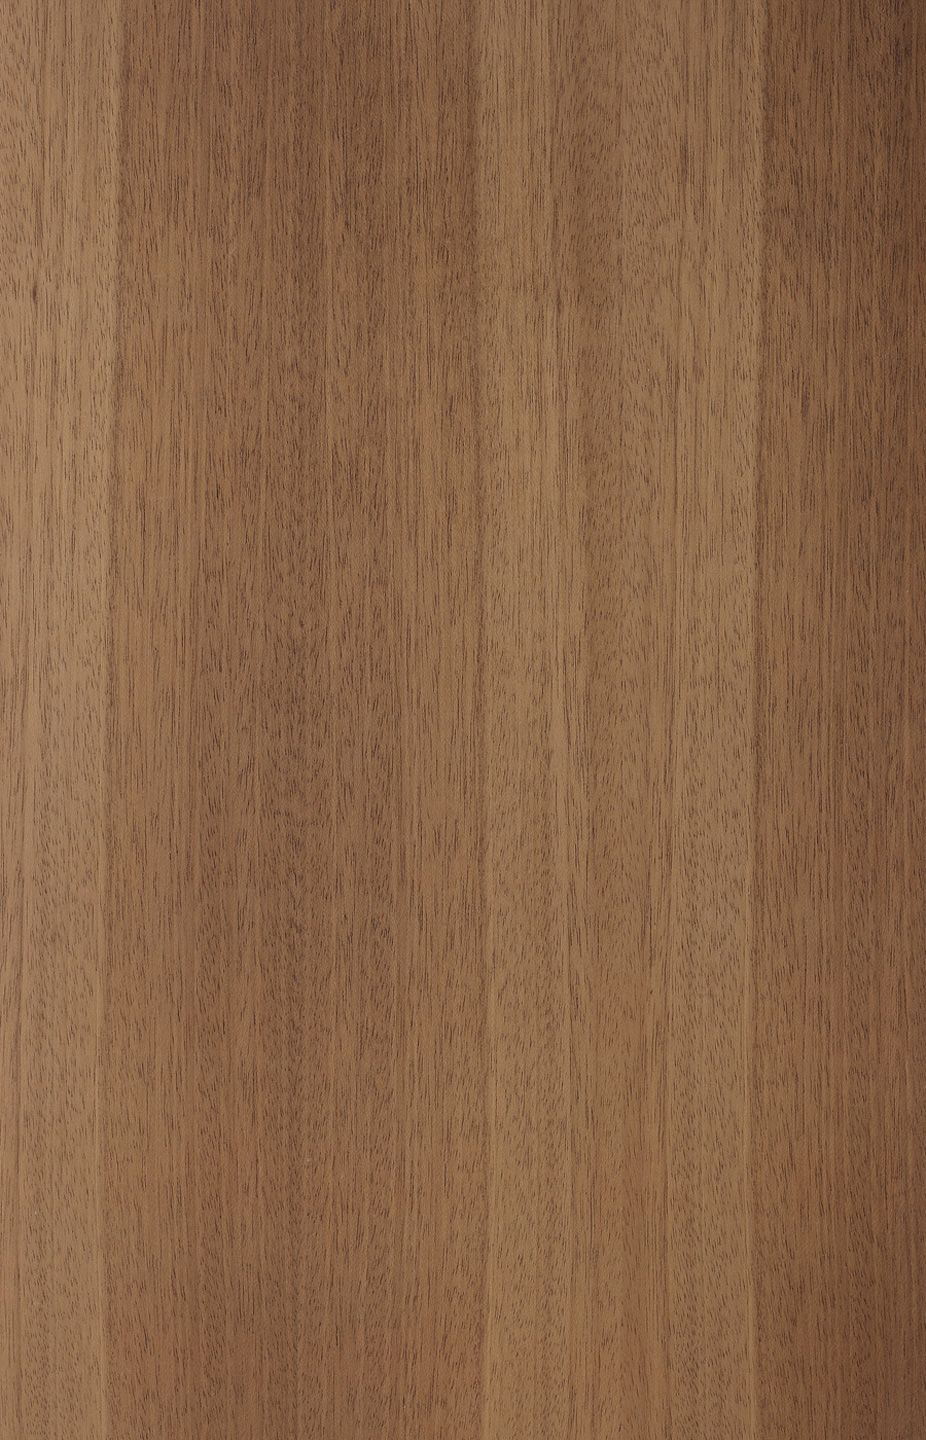 Natural Fier O Veneers Light Cocobolo Light Wood Texture Veneer Texture Wood Texture